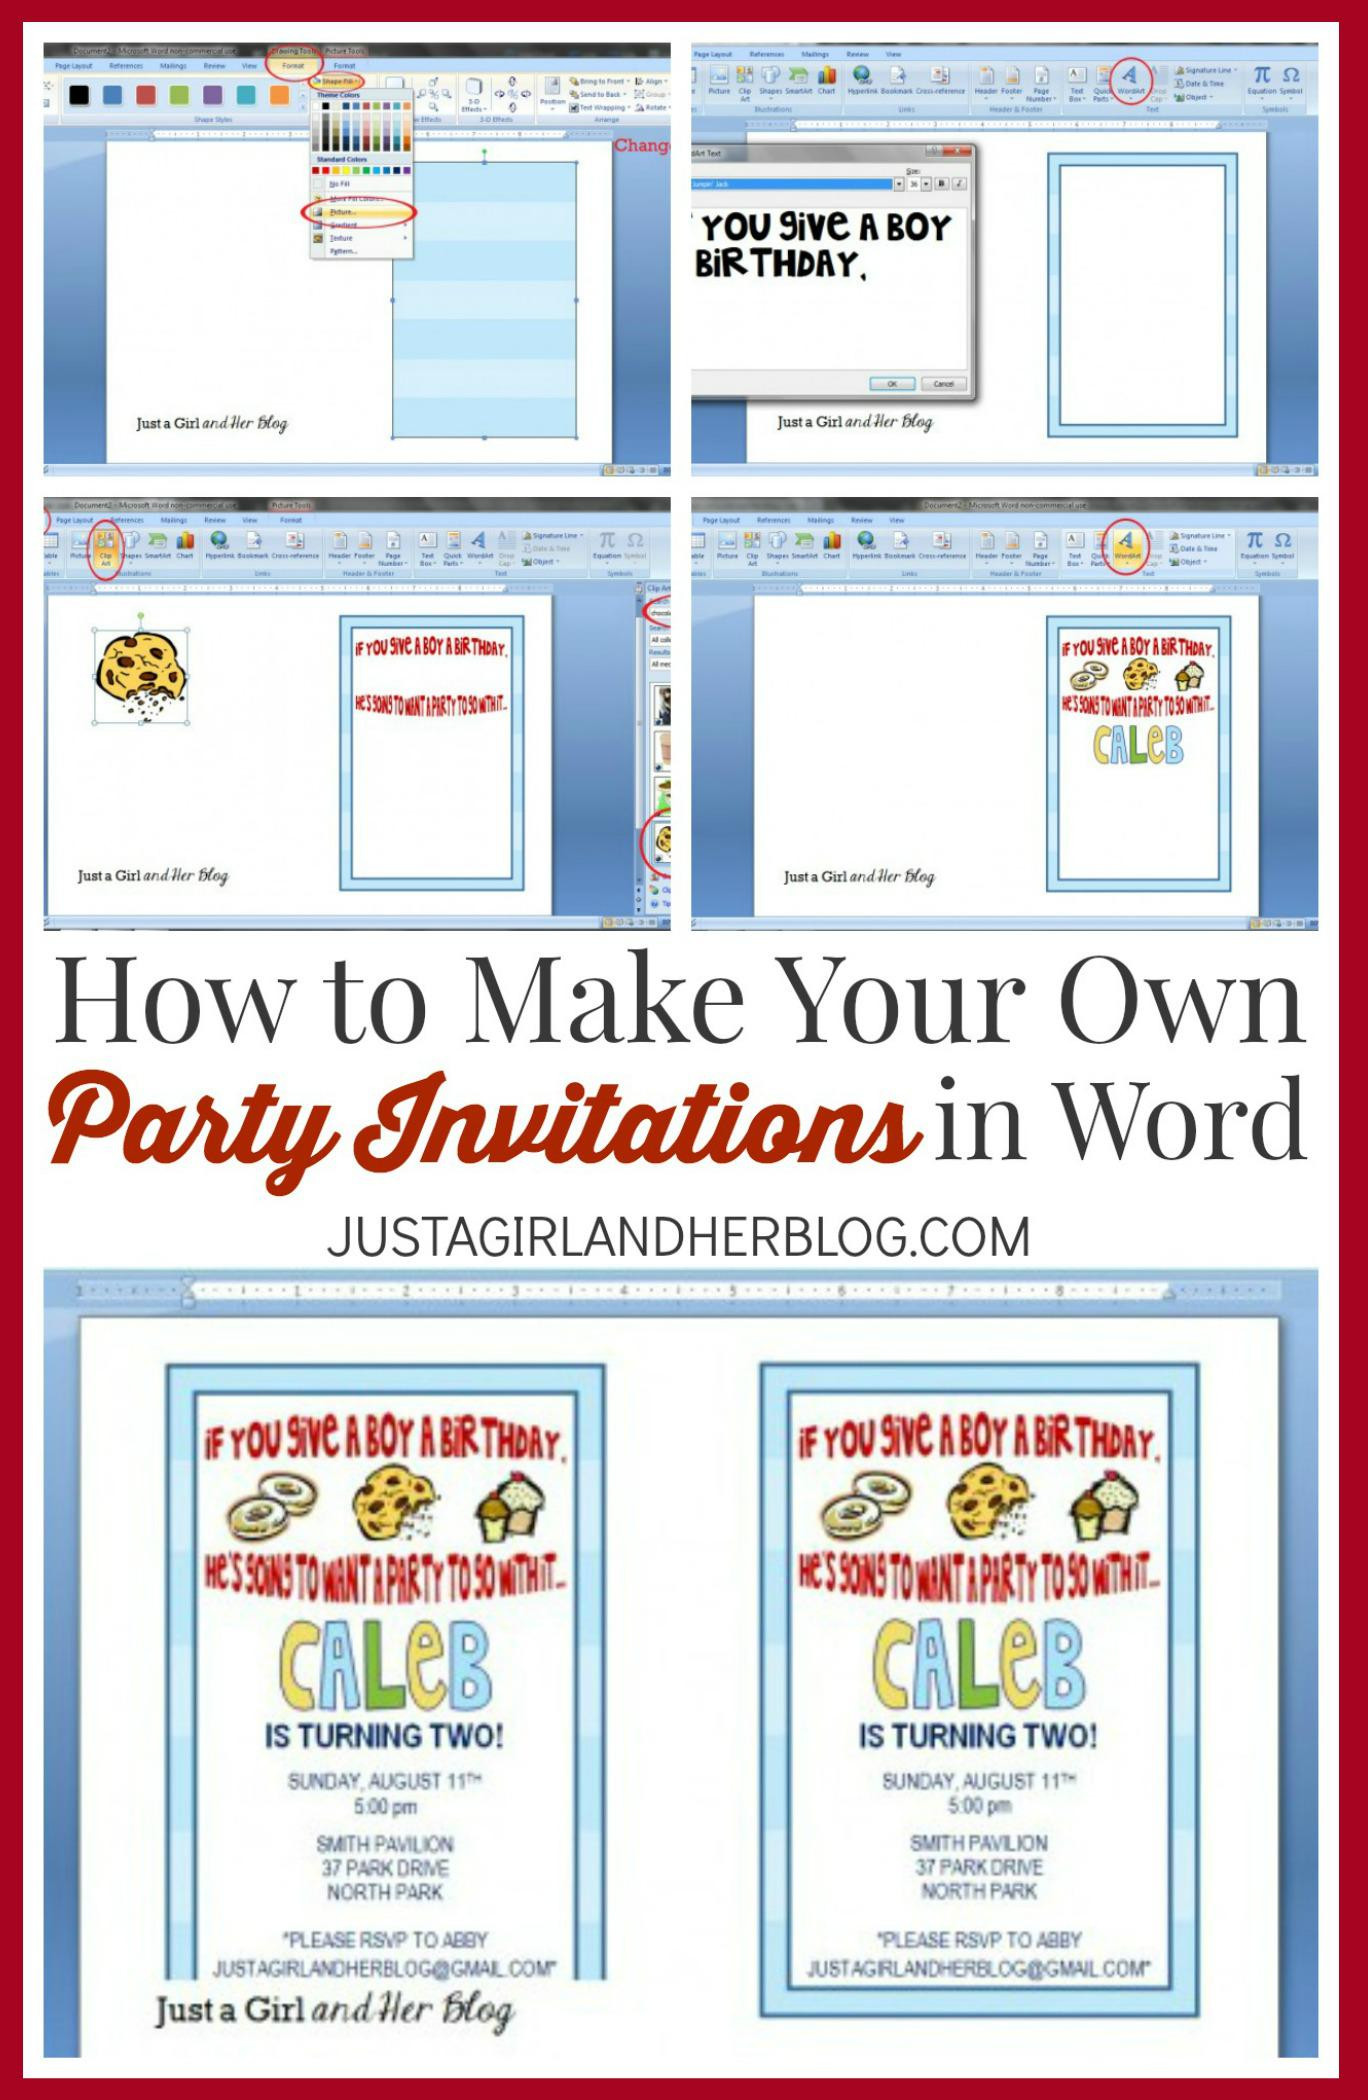 Create Birthday Party Invitations  Make Your Own Party Invitations